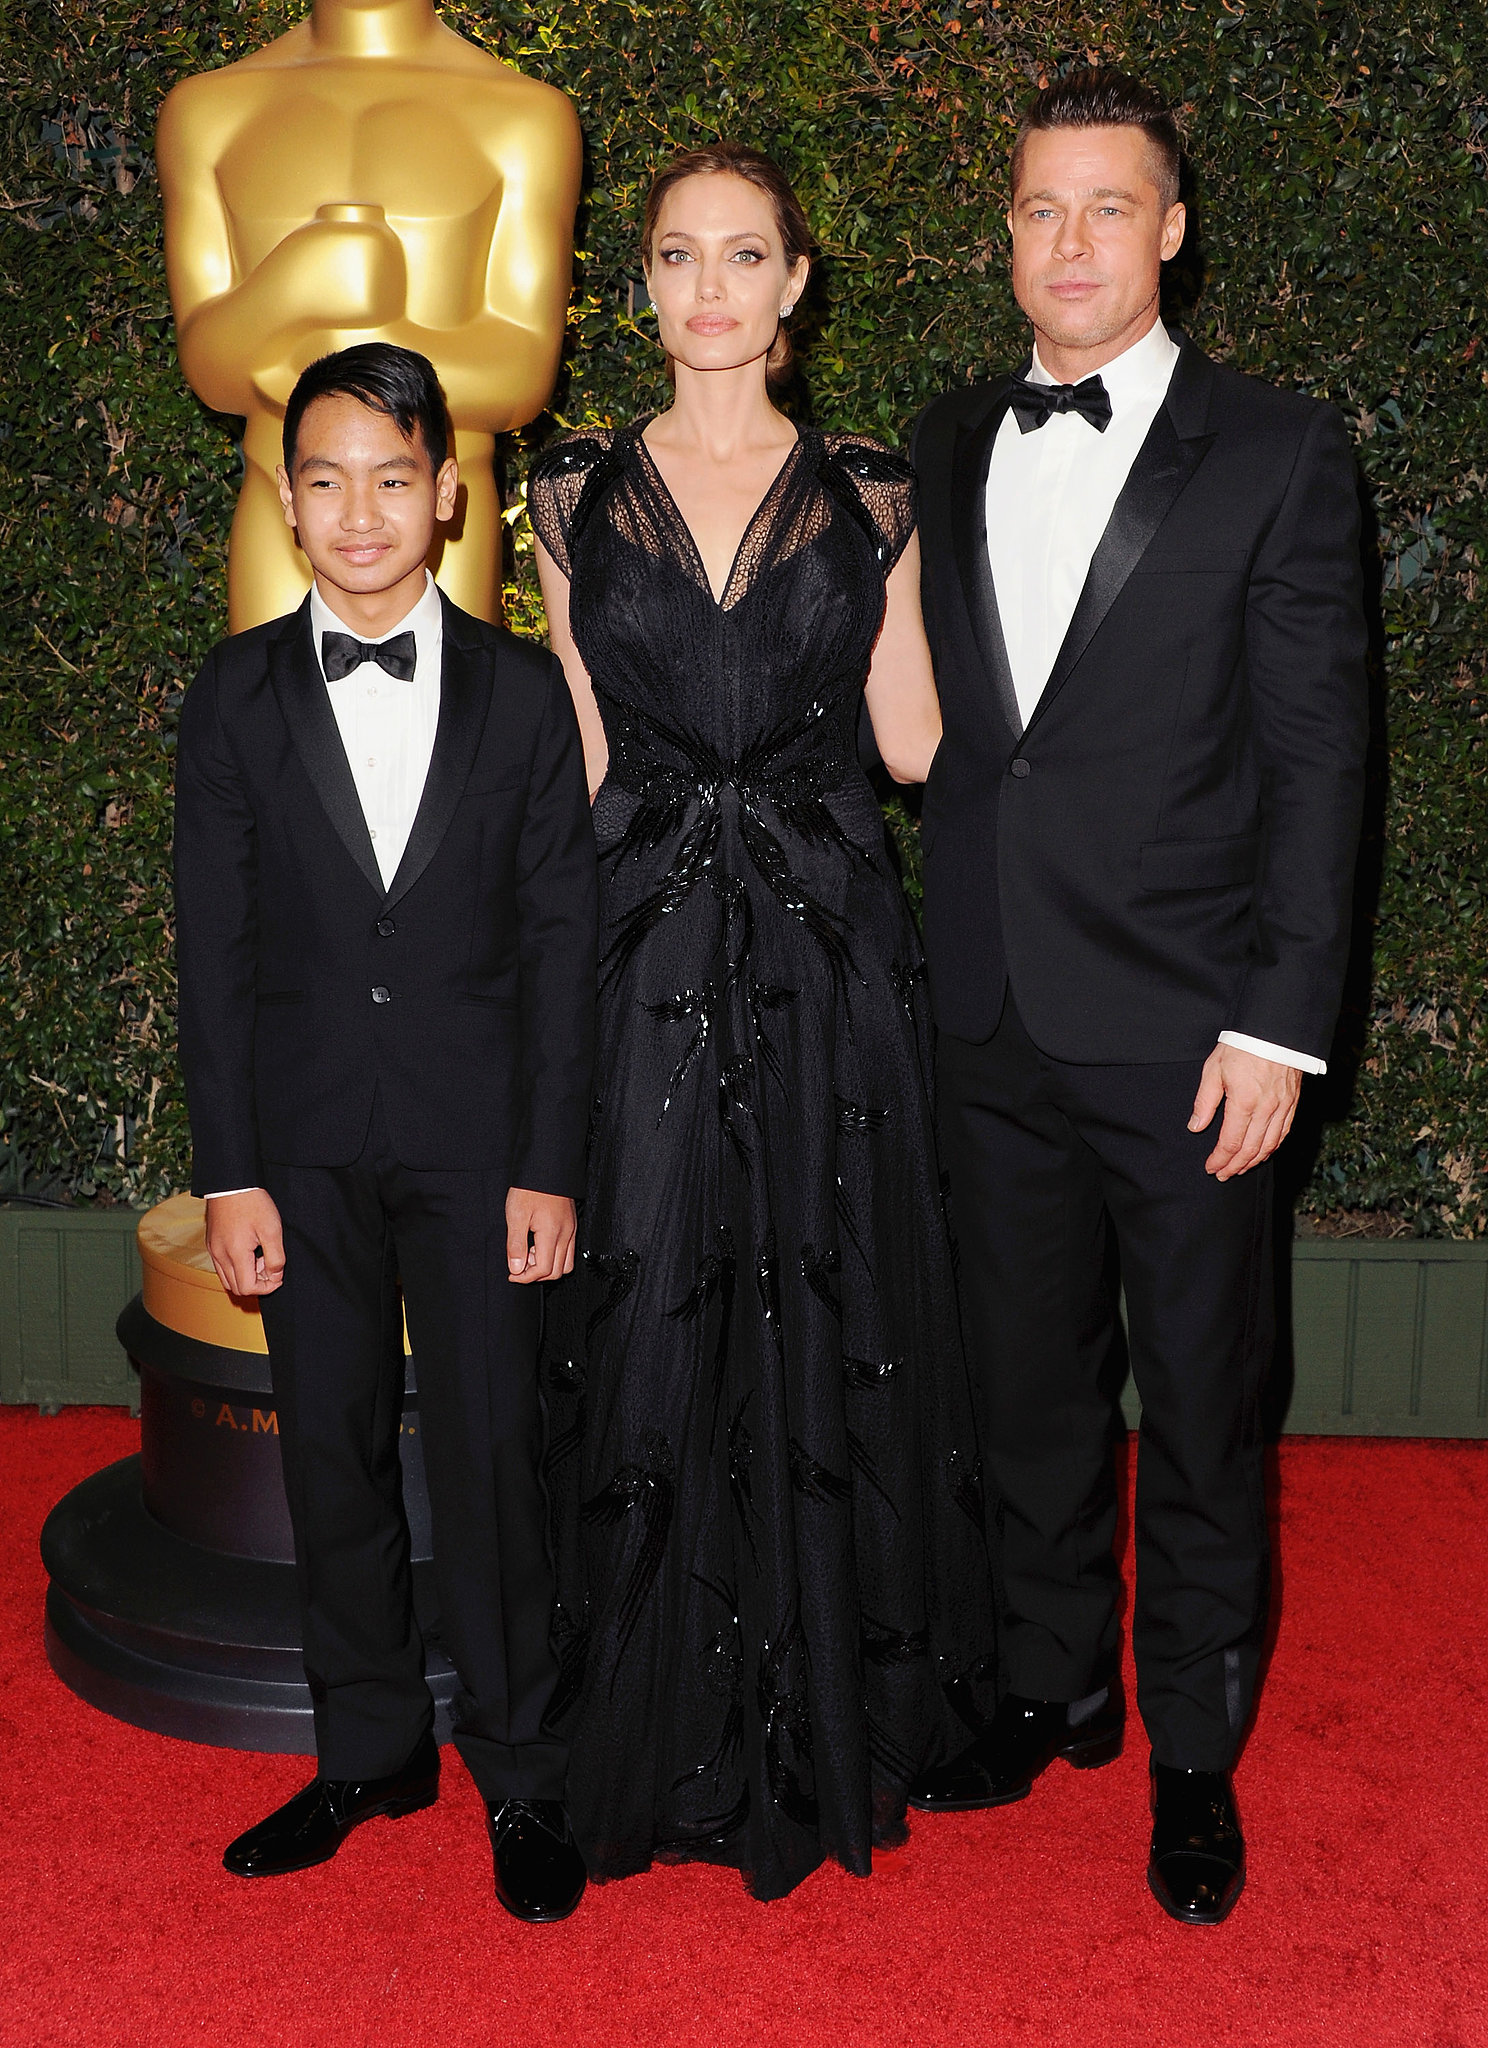 Angelina Jolie walked the Governors Awards red carpet with Brad Pitt and their son Maddox before she was presented with the Jean Hersholt Humanitarian Award.